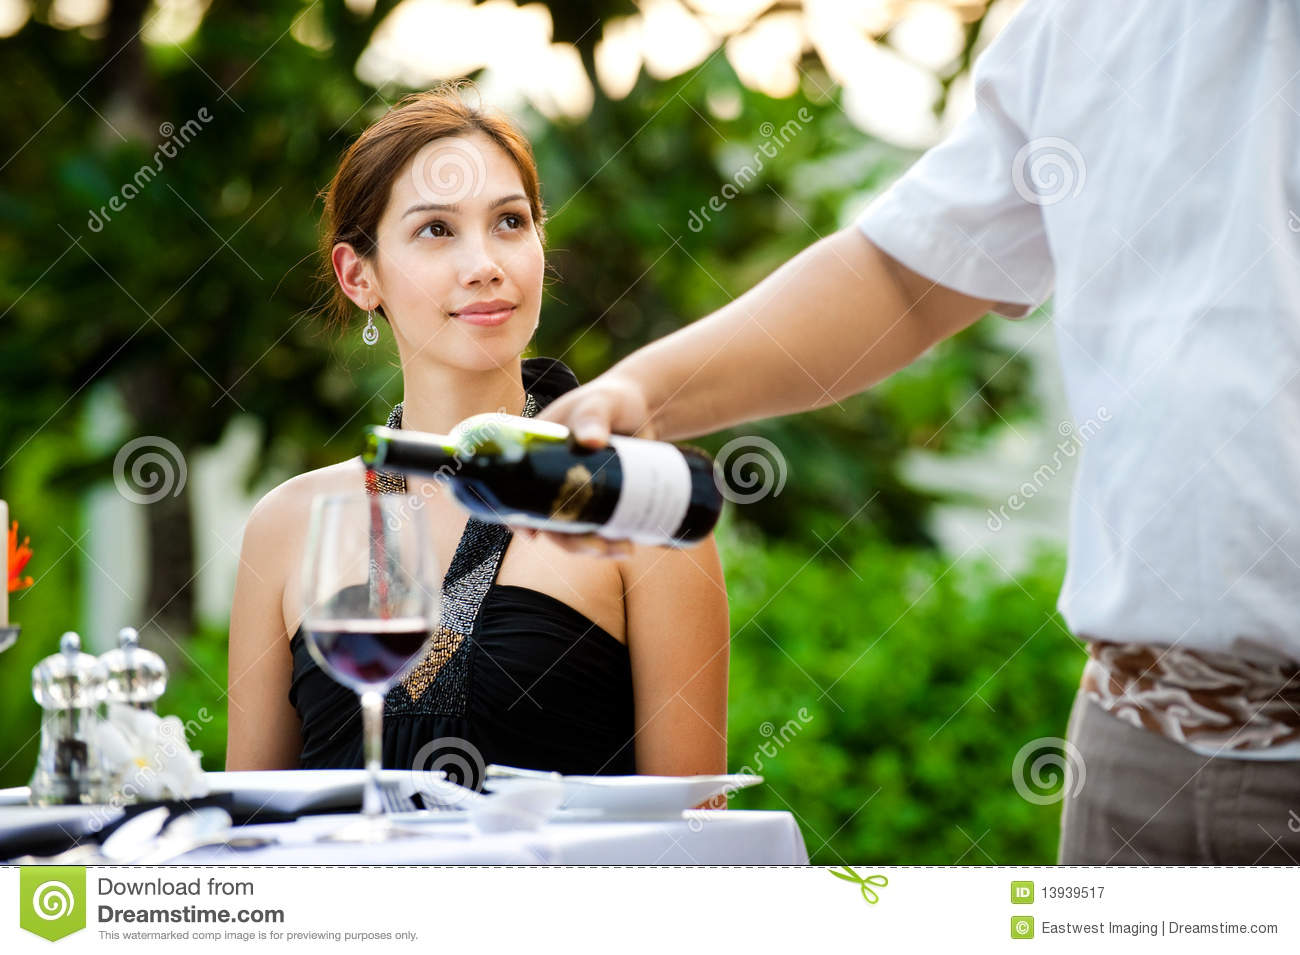 Outdoor meal royalty free stock photography image 13939517 for Meal outdoors